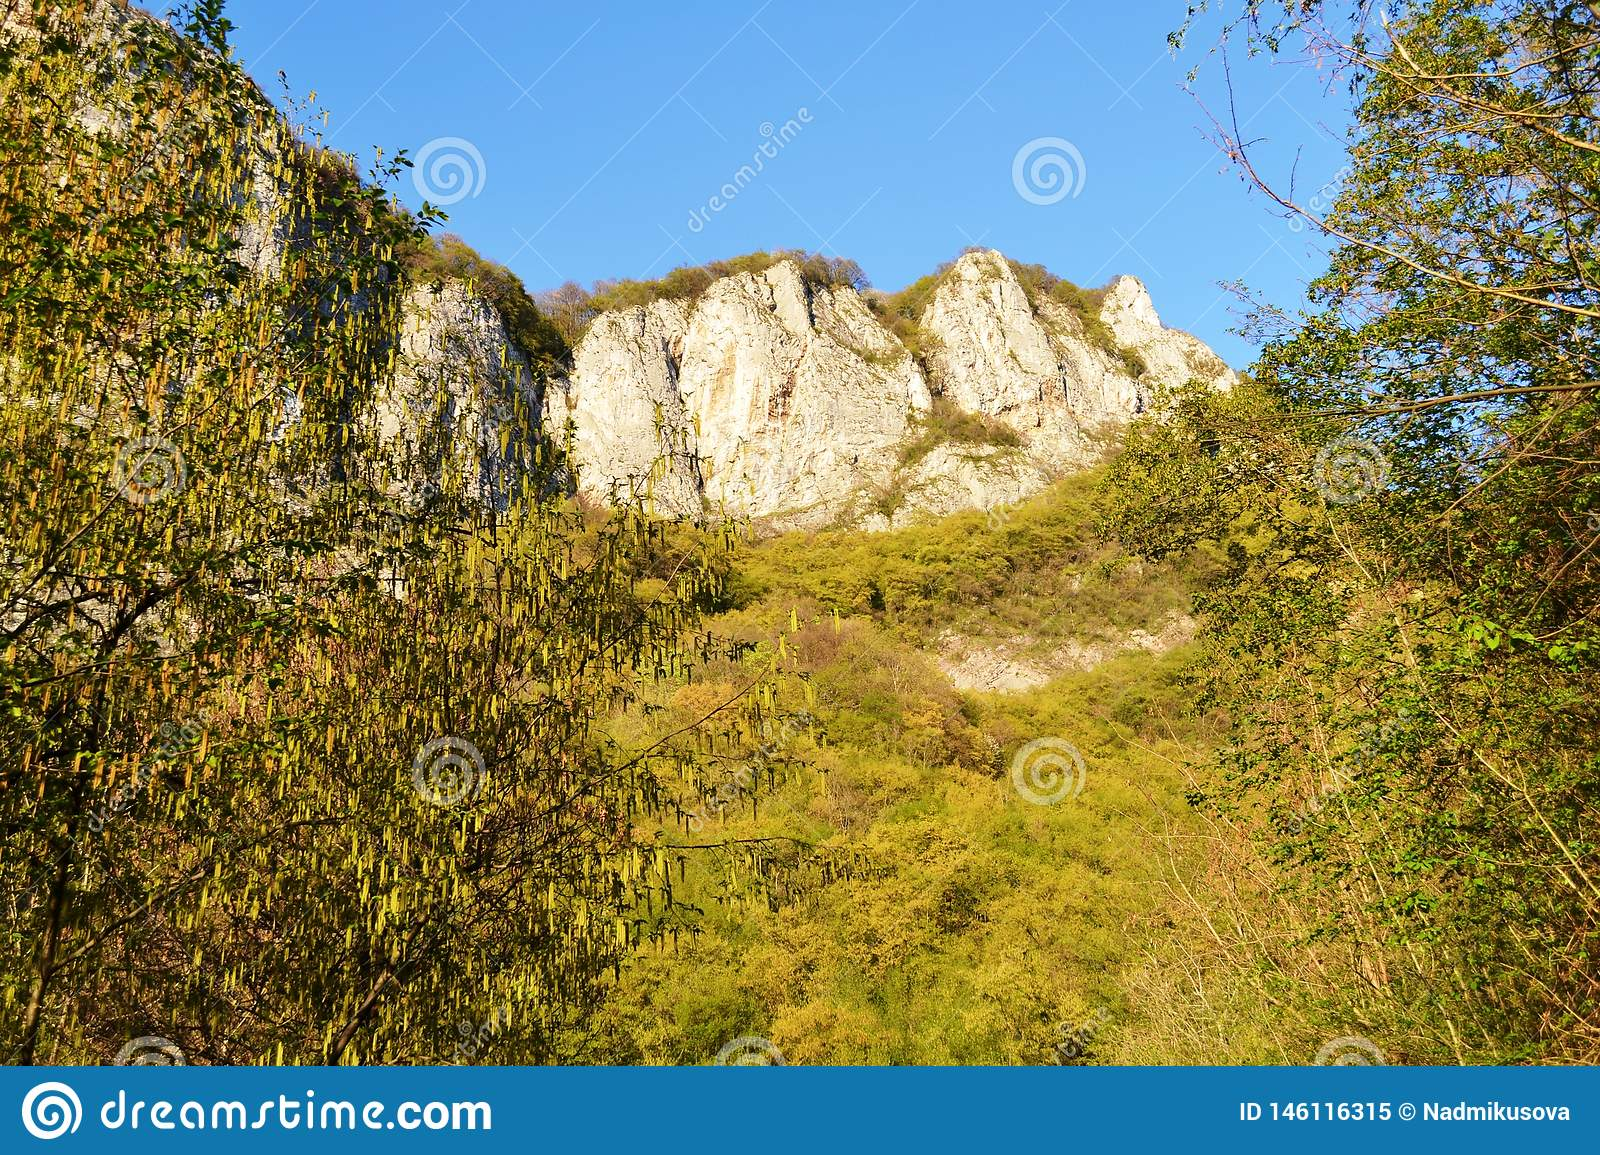 Slope covered with spring vegetation, blossoming catkins of birch trees in the forest and blue sky background.